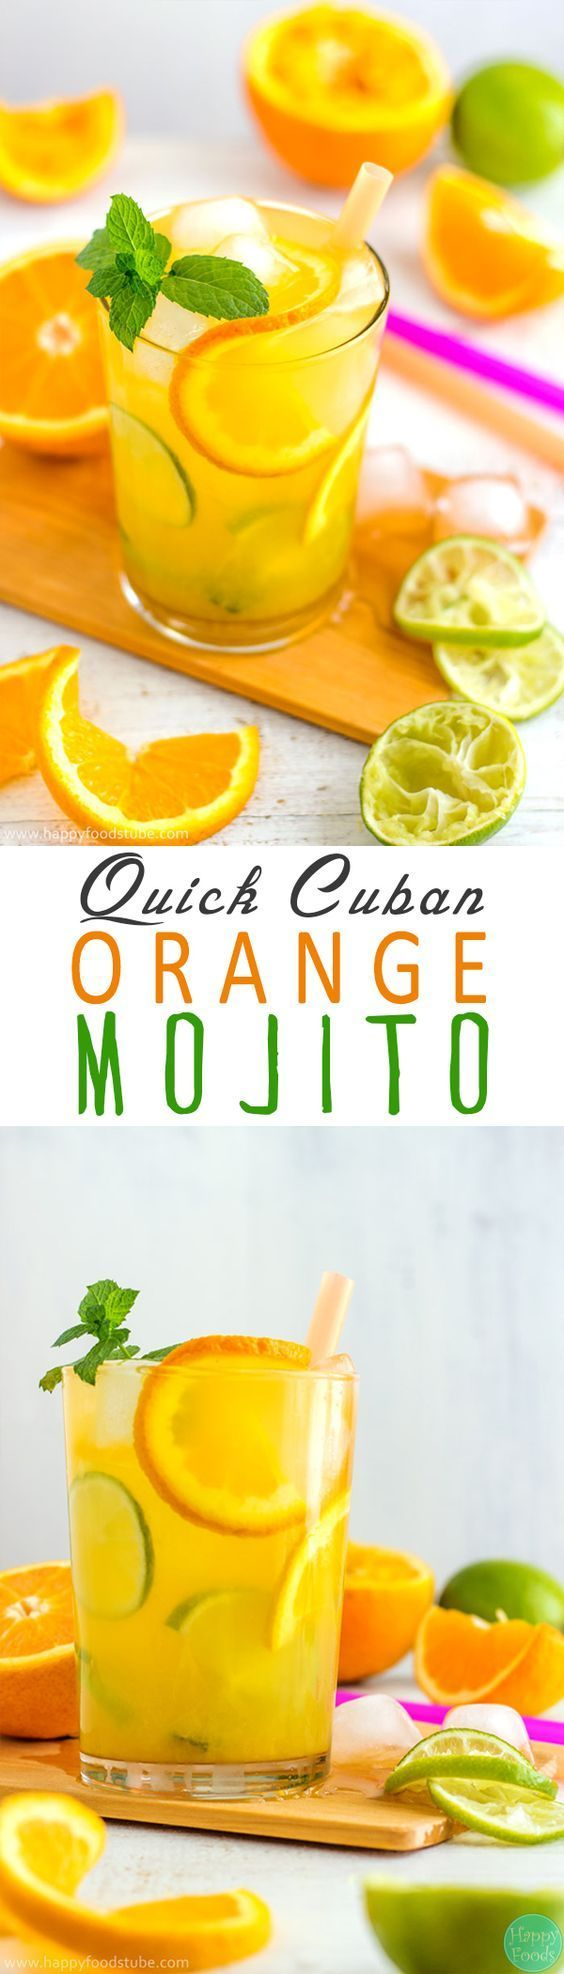 Easy Cuban Orange Mojito - Ultimate summer cocktail recipe! Only 5 ingredients and super easy to make! | happyfoodstube.com